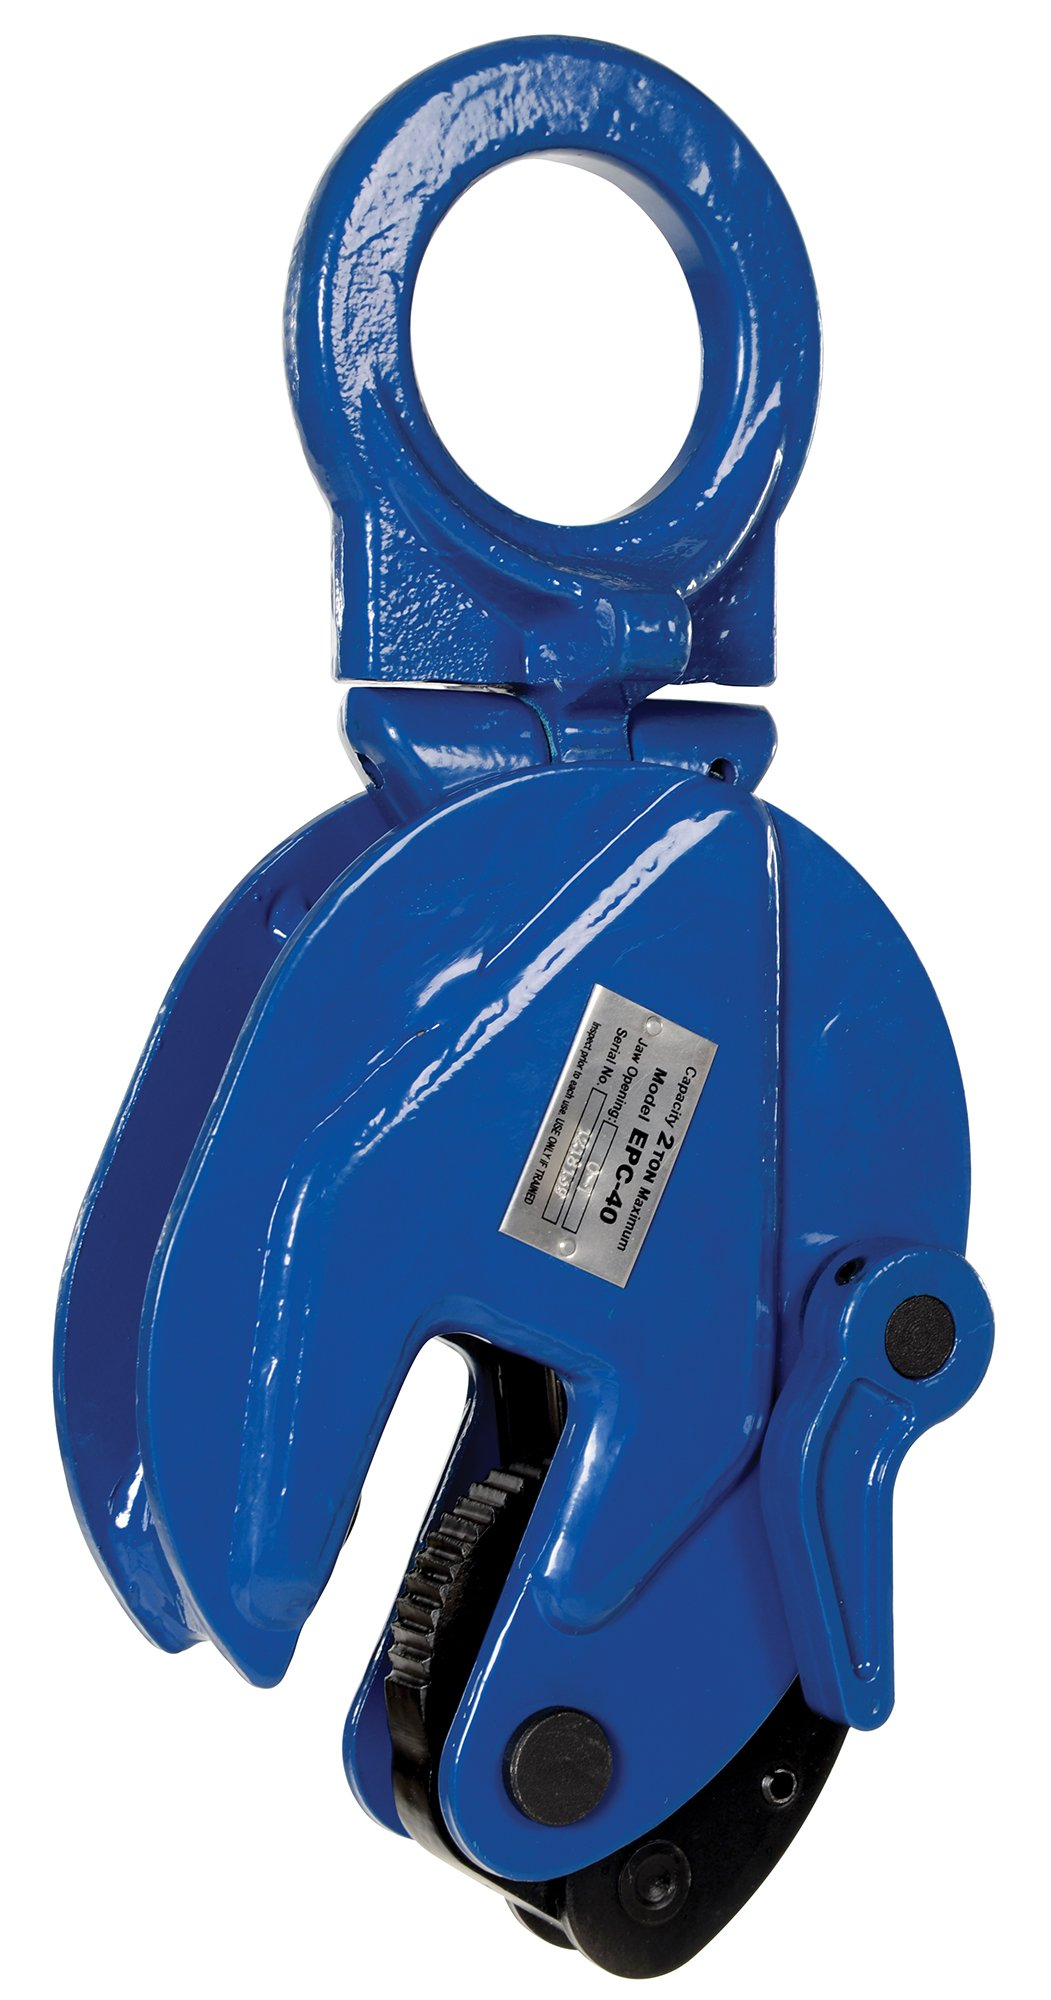 Vestil EPC-40 Vertical Plate Clamp, 1'' Plate Thickness, 4000 lbs Working Load Limit, 2.38'' Bale Opening